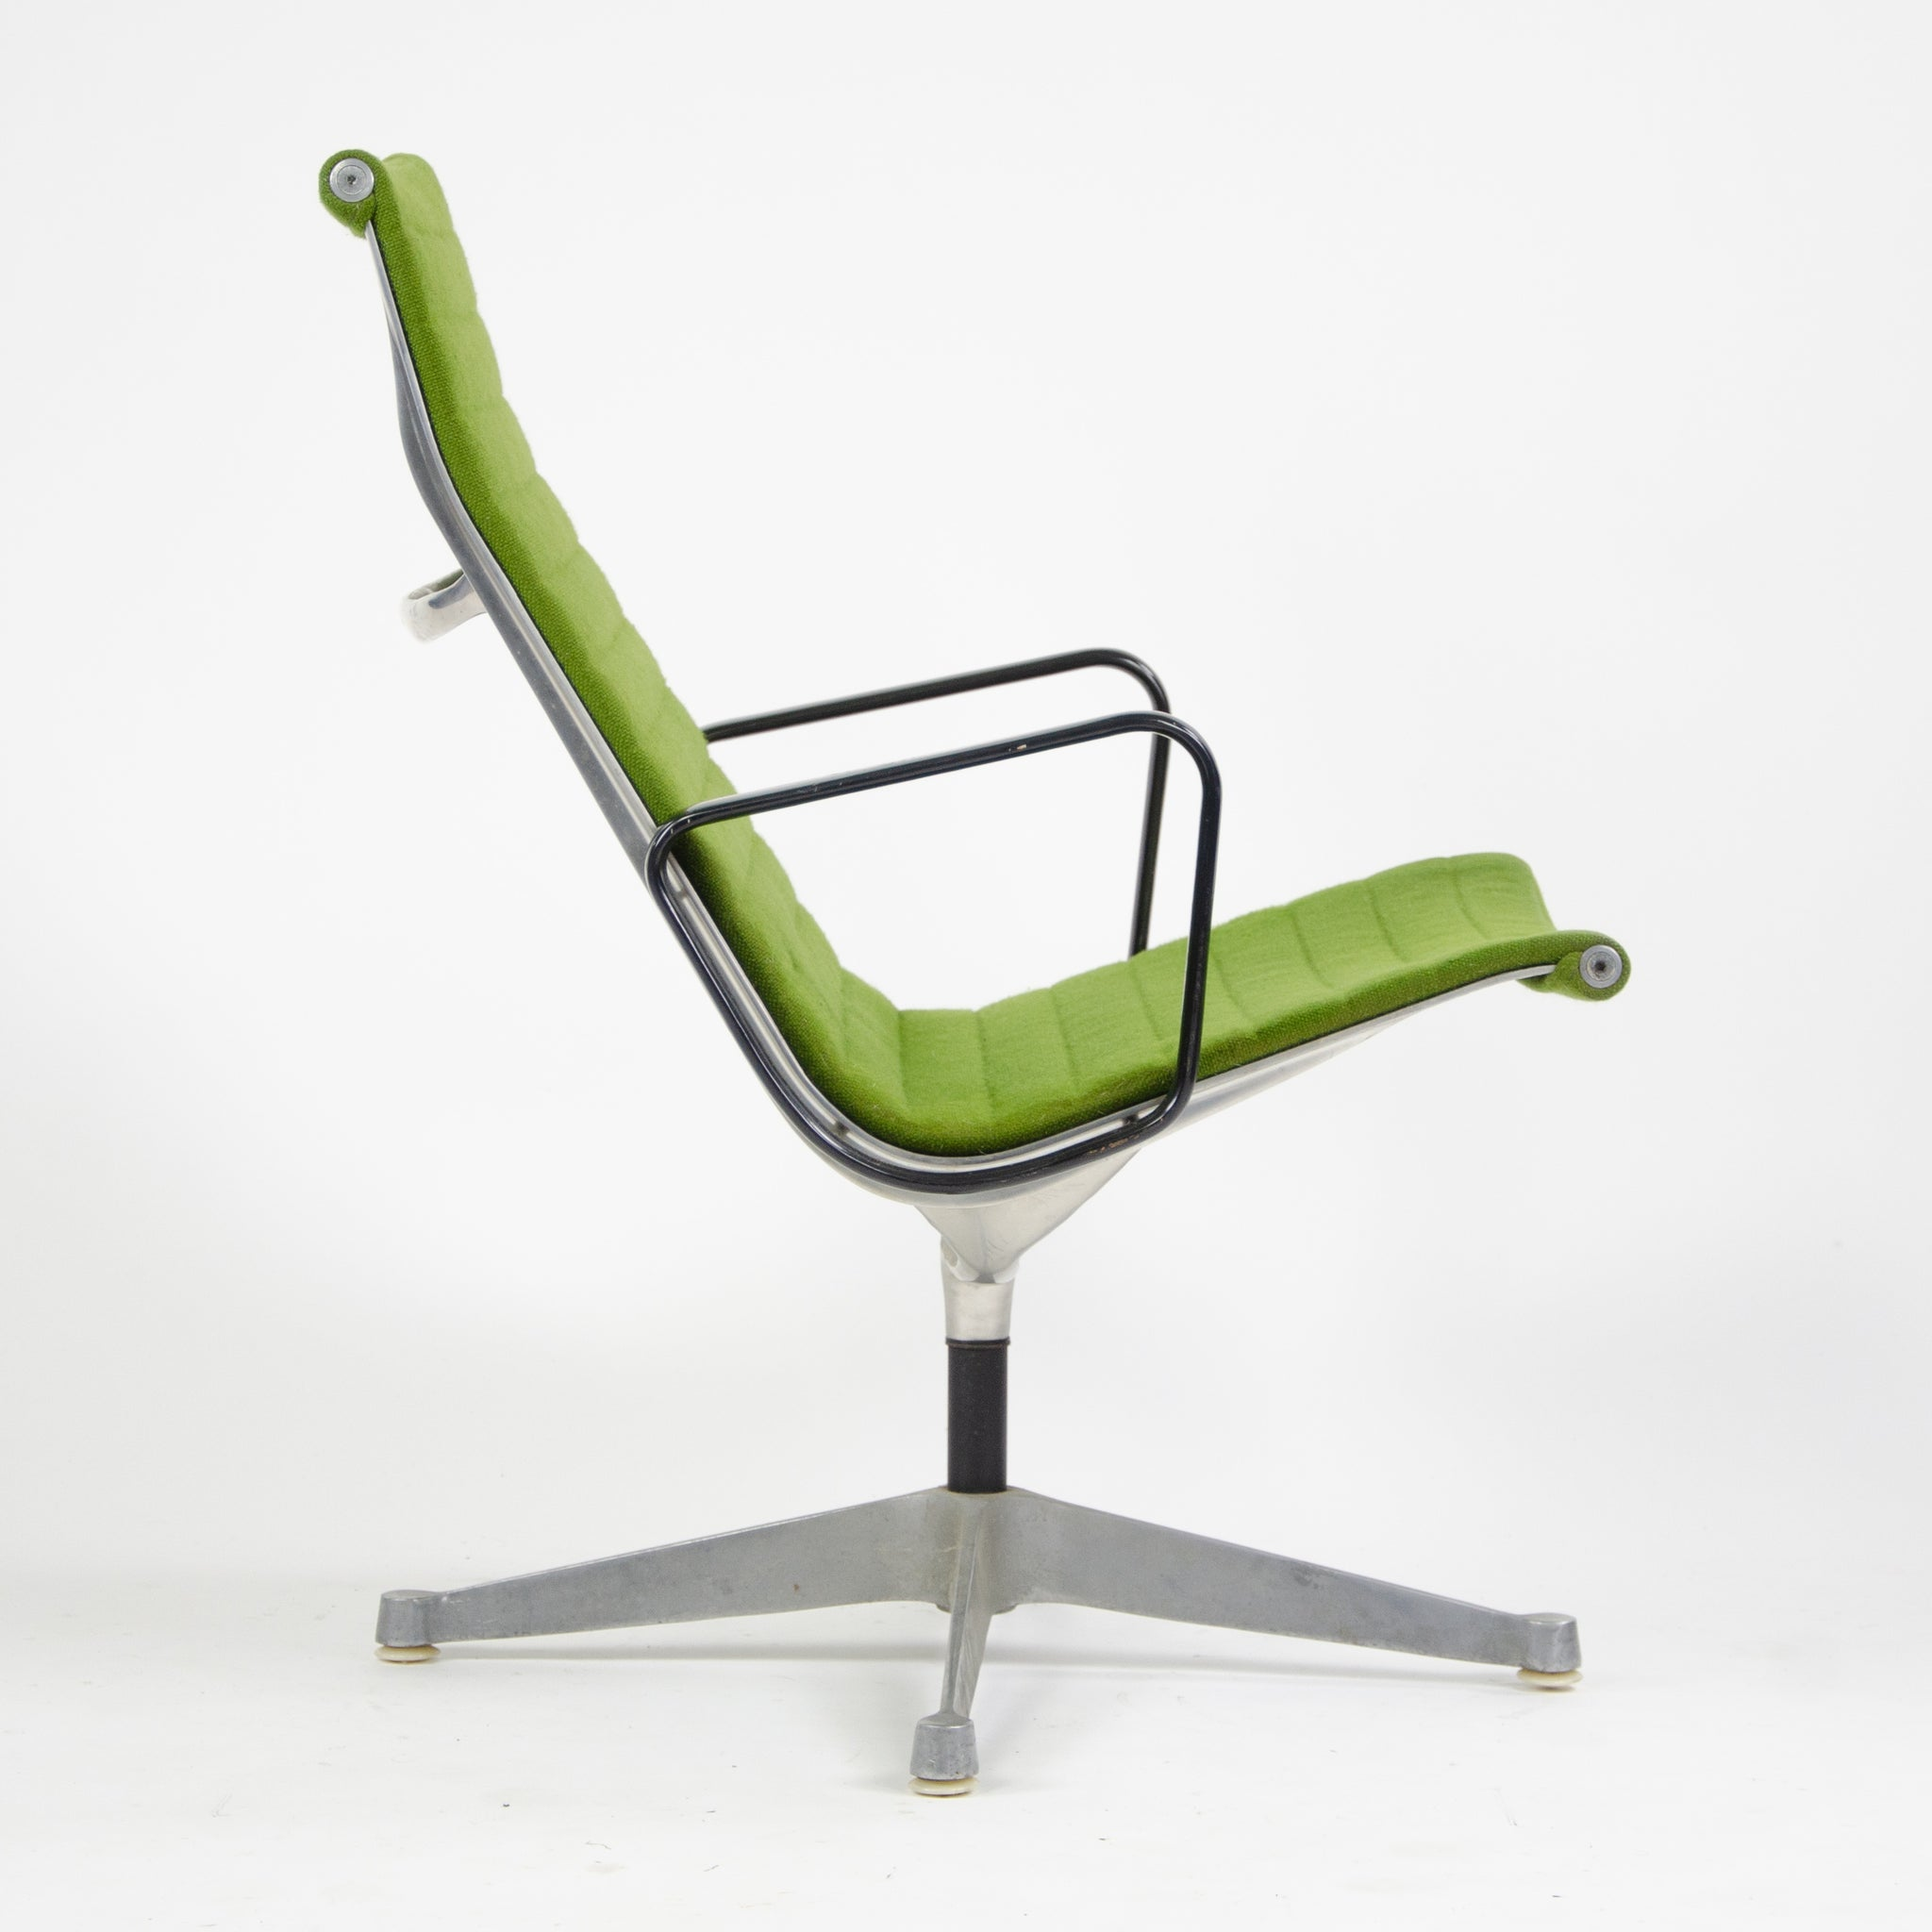 SOLD 1960's Green Eames Herman Miller Aluminum Group Lounge Chair, Fabric Upholstery